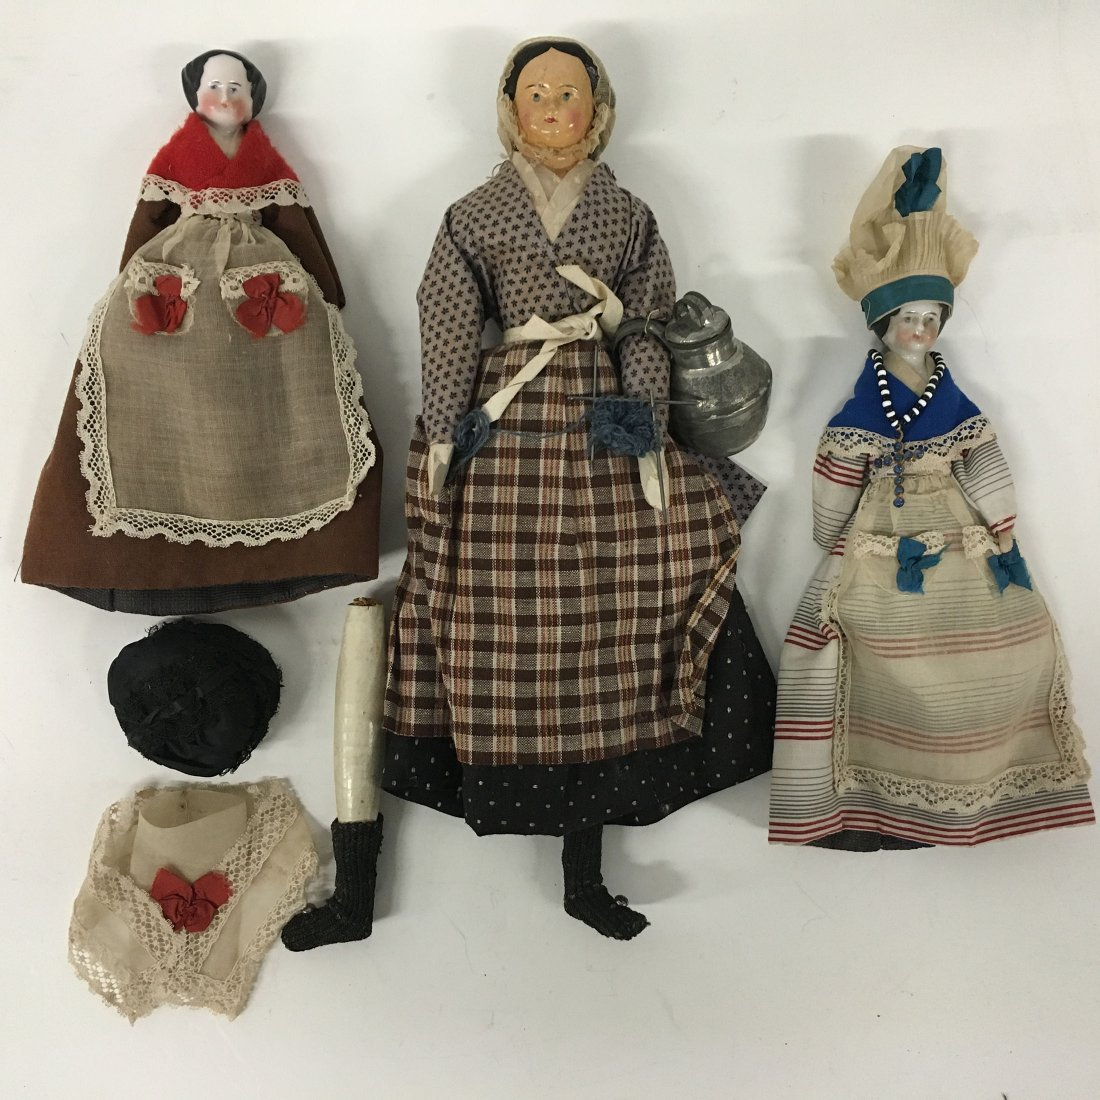 Two (2) Antique China head dolls and paper mache doll